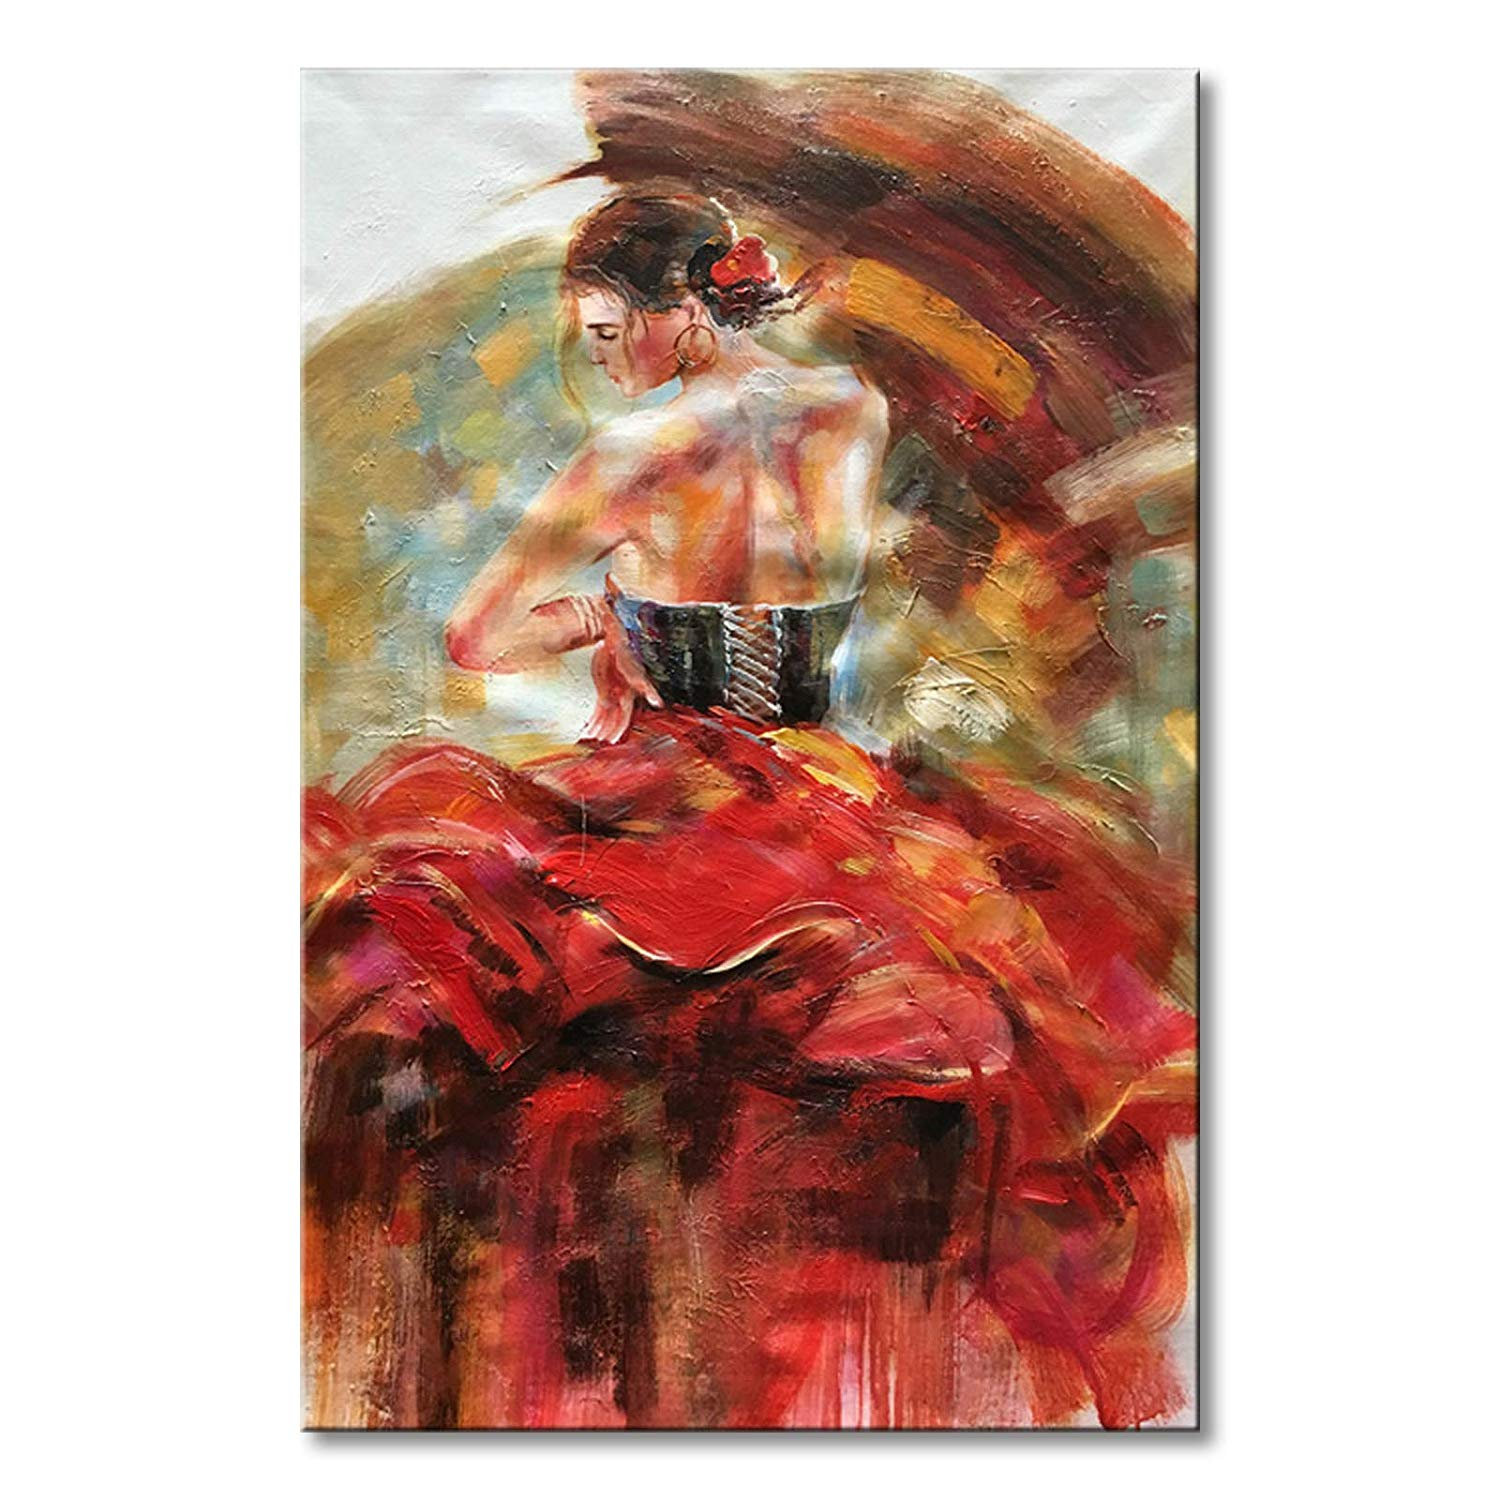 Seekland Art Large Hand painted Nude Lady Dancing with Red Dress Abstract Canvas Wall Art Impression Oil Painting Modern Contemporary Artwork Fine Pictures Unframed (3648 inch)